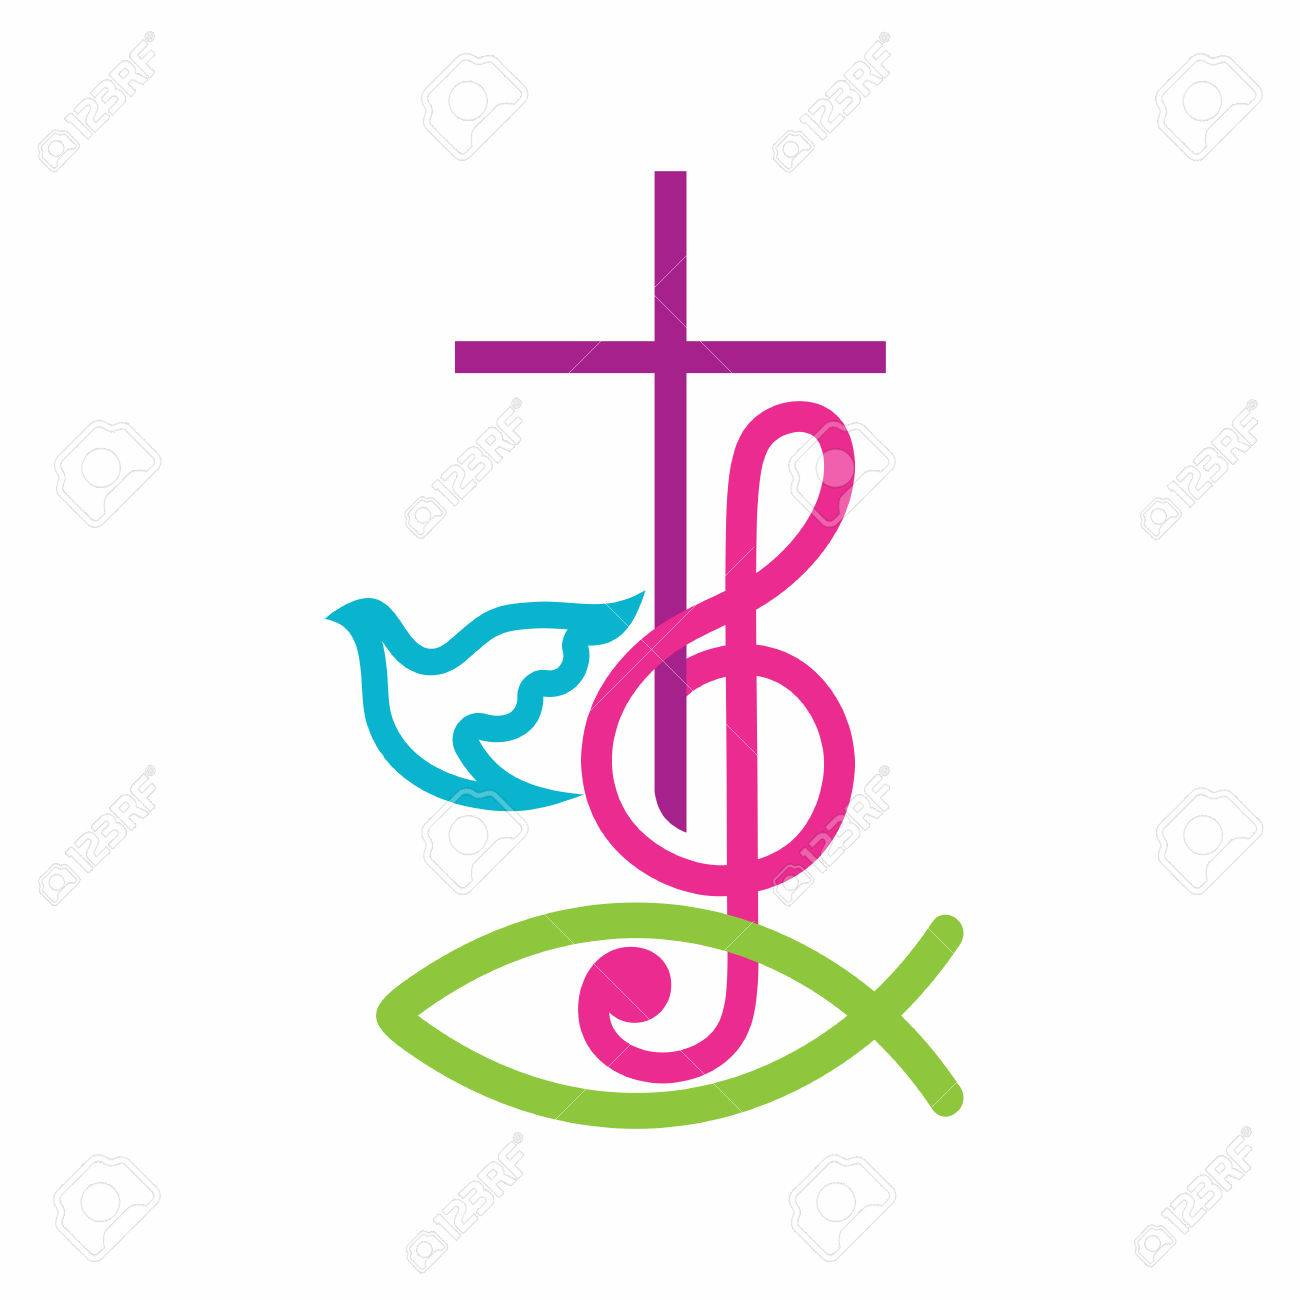 Church logo christian symbols the cross of jesus christ and church logo christian symbols the cross of jesus christ and treble clef as a buycottarizona Image collections